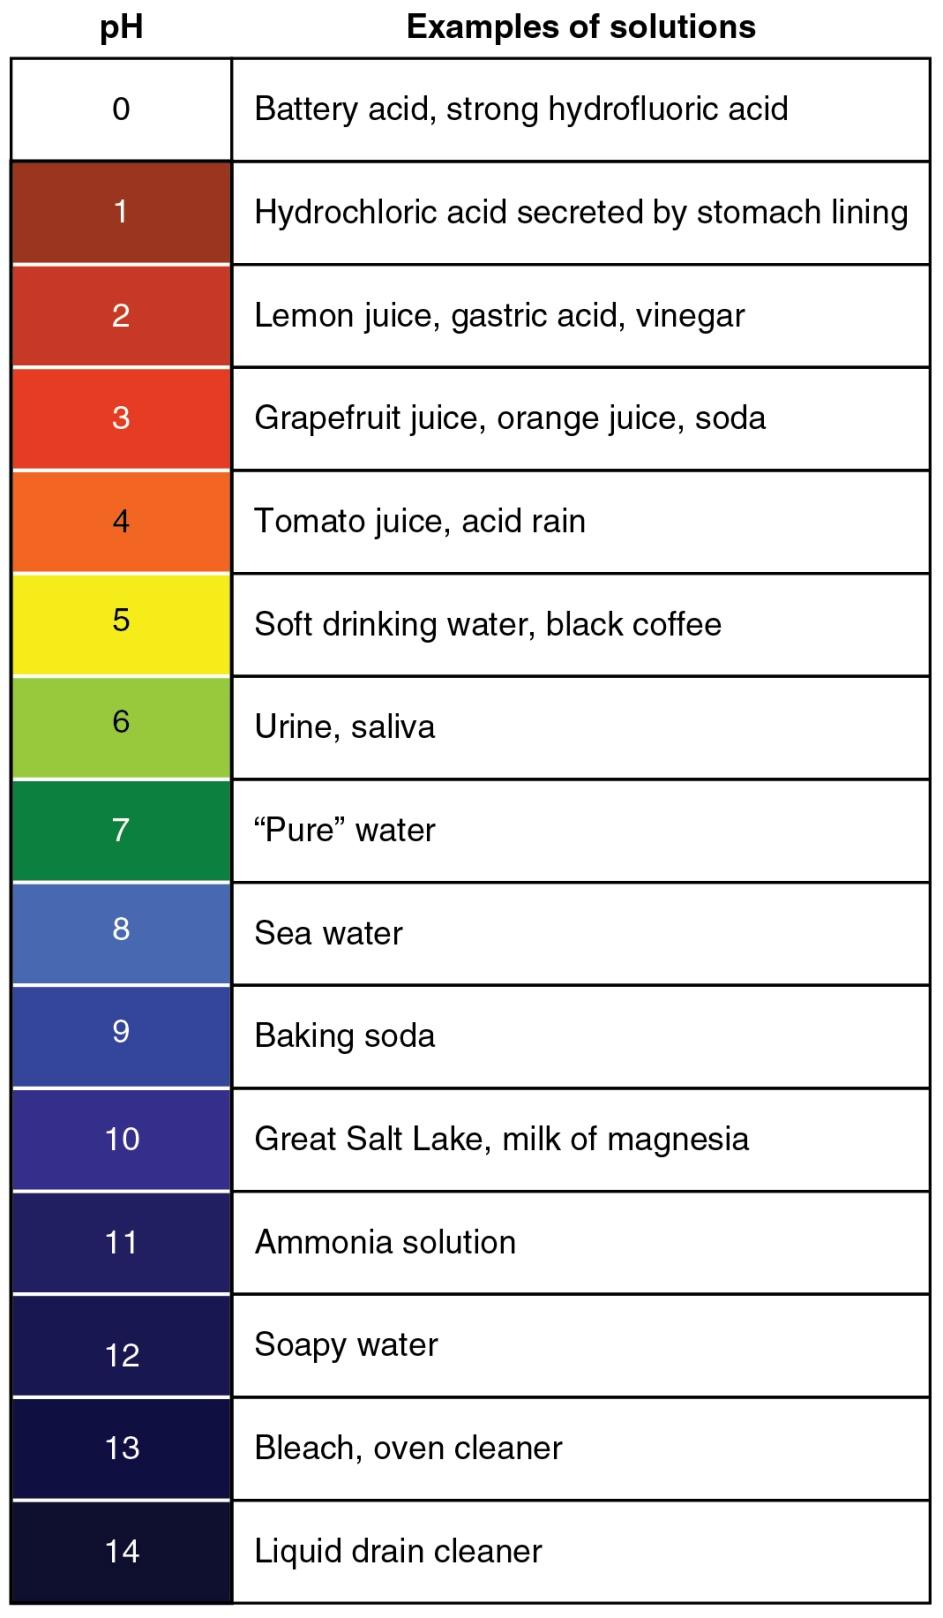 The everyday ph scale To review what ph means in practice, we consider the ph of everyday substances